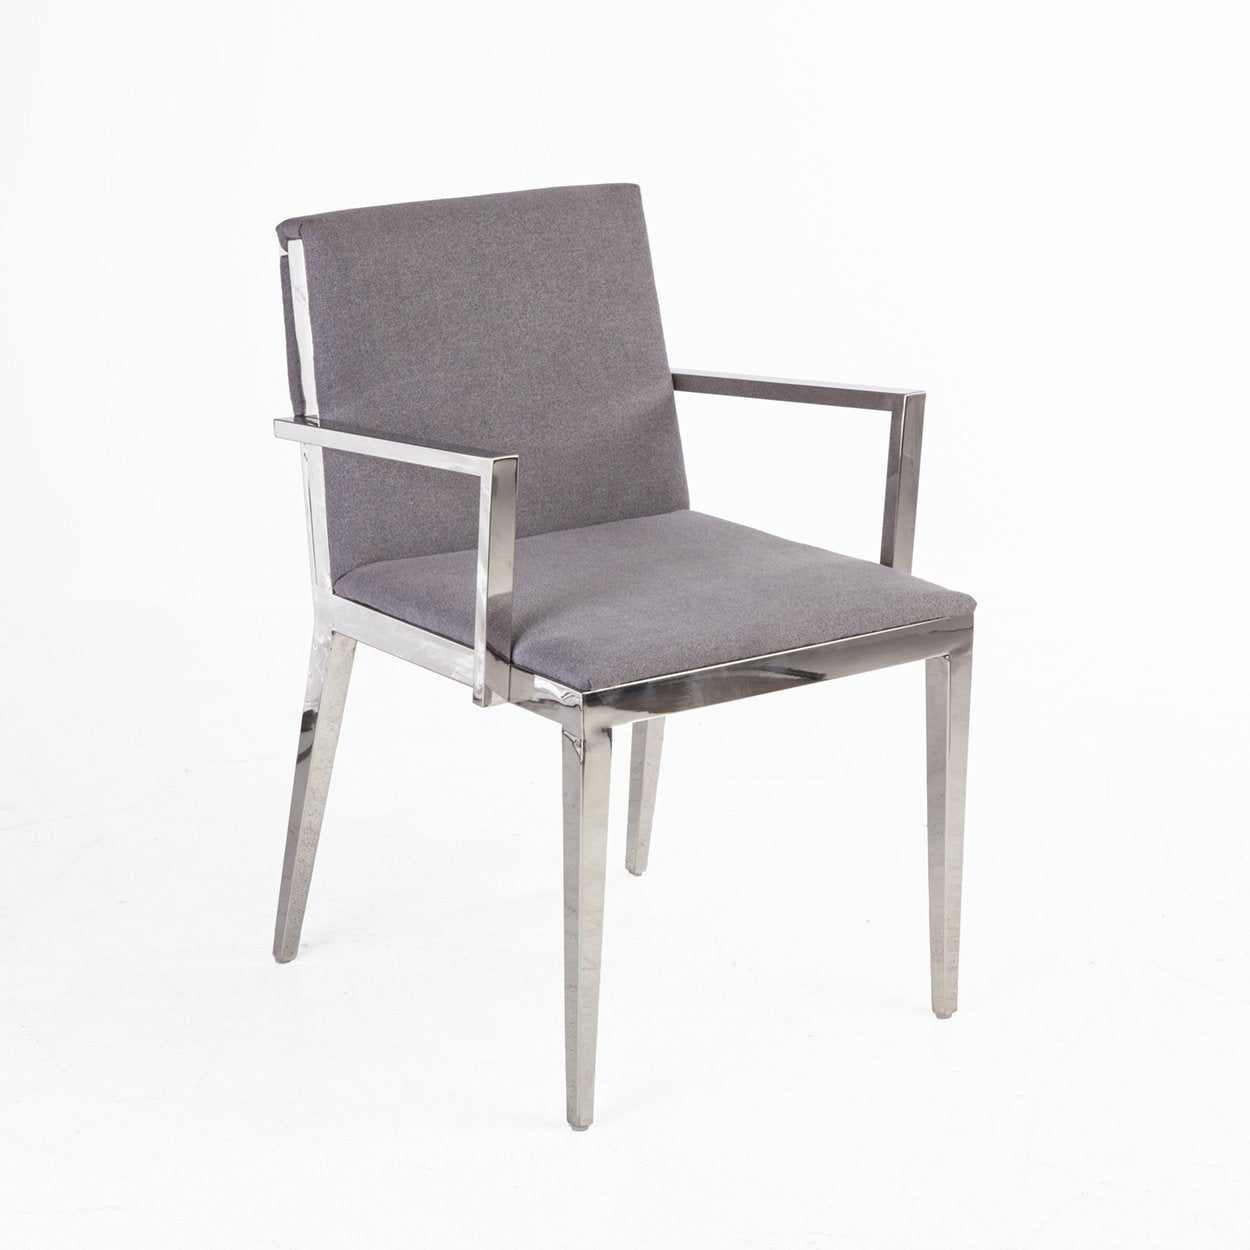 [FV371GREY] Eldora Arm Chair sale